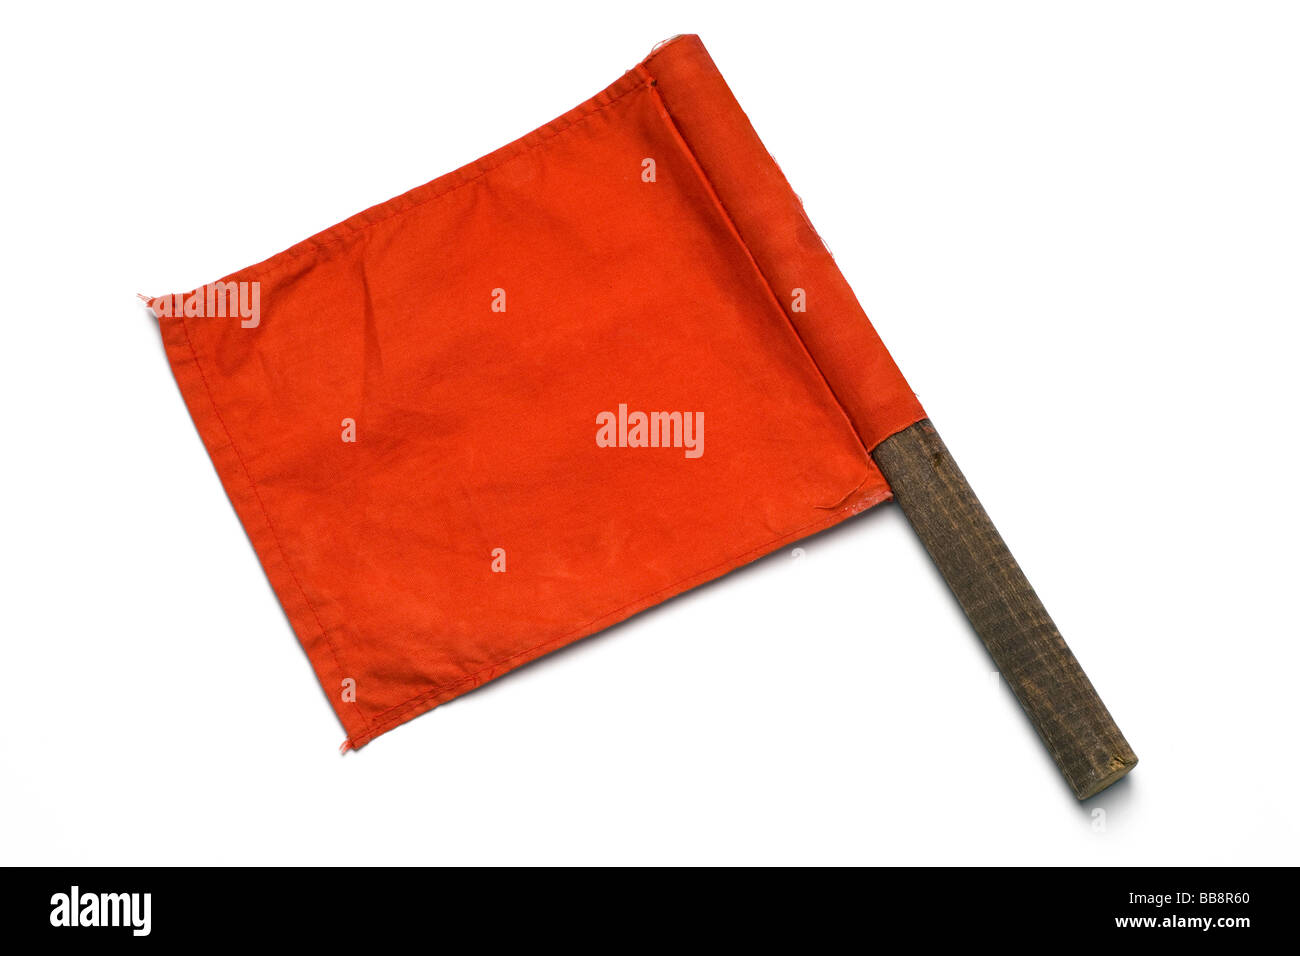 a red signaling flag on white - Stock Image